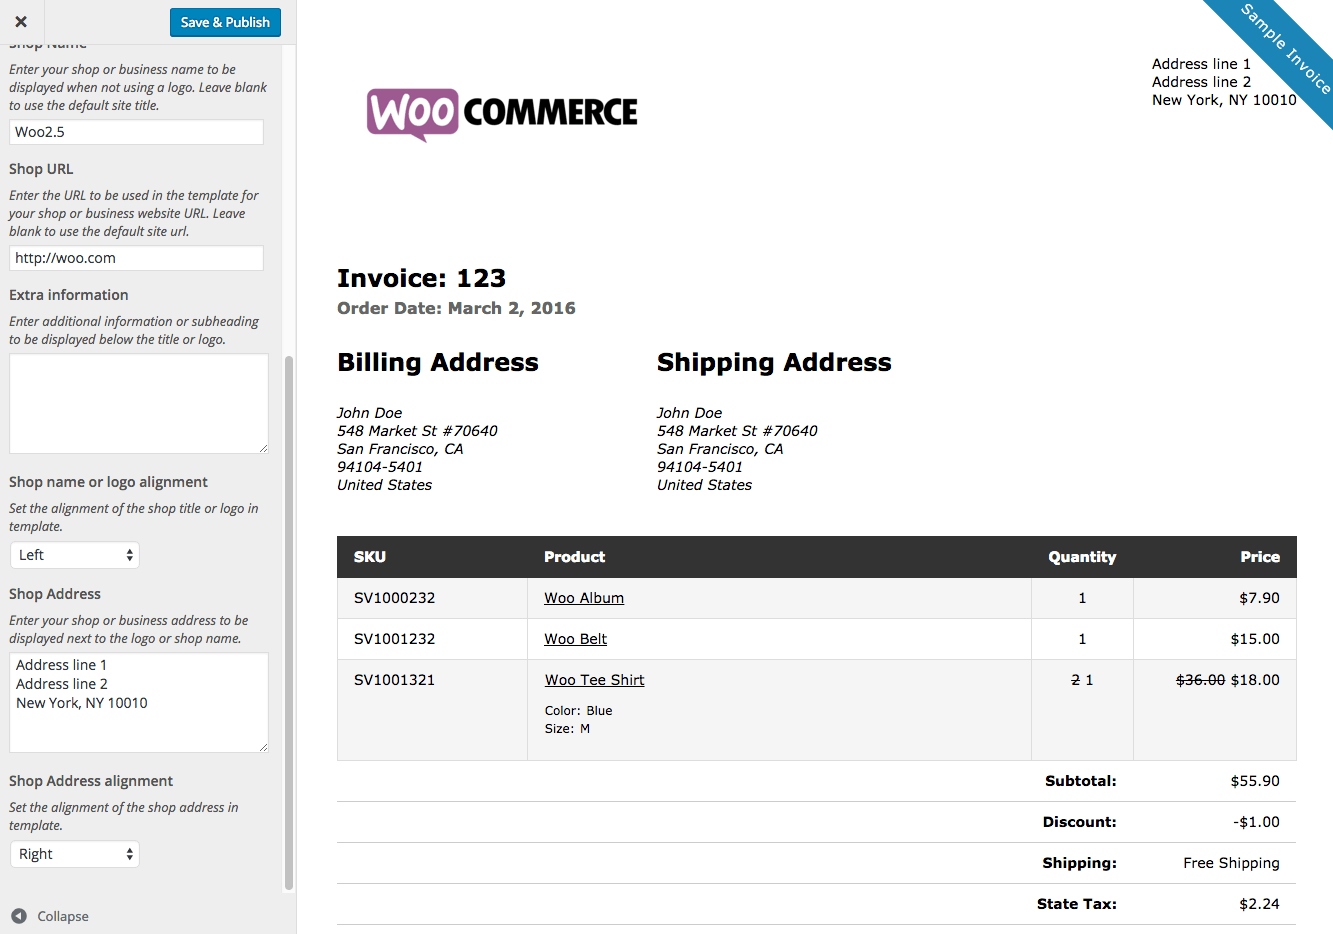 Ebitus  Ravishing Woocommerce Print Invoices Amp Packing Lists  Woocommerce Docs With Handsome Woocommerce Print Invoices  Packing Lists Customizer With Amusing Permanent Resident Card Receipt Number Also Medical Receipts In Addition Simple Receipt And Read Receipts Email As Well As Car Receipt Additionally Fred Meyer Return Policy Without Receipt From Docswoocommercecom With Ebitus  Handsome Woocommerce Print Invoices Amp Packing Lists  Woocommerce Docs With Amusing Woocommerce Print Invoices  Packing Lists Customizer And Ravishing Permanent Resident Card Receipt Number Also Medical Receipts In Addition Simple Receipt From Docswoocommercecom